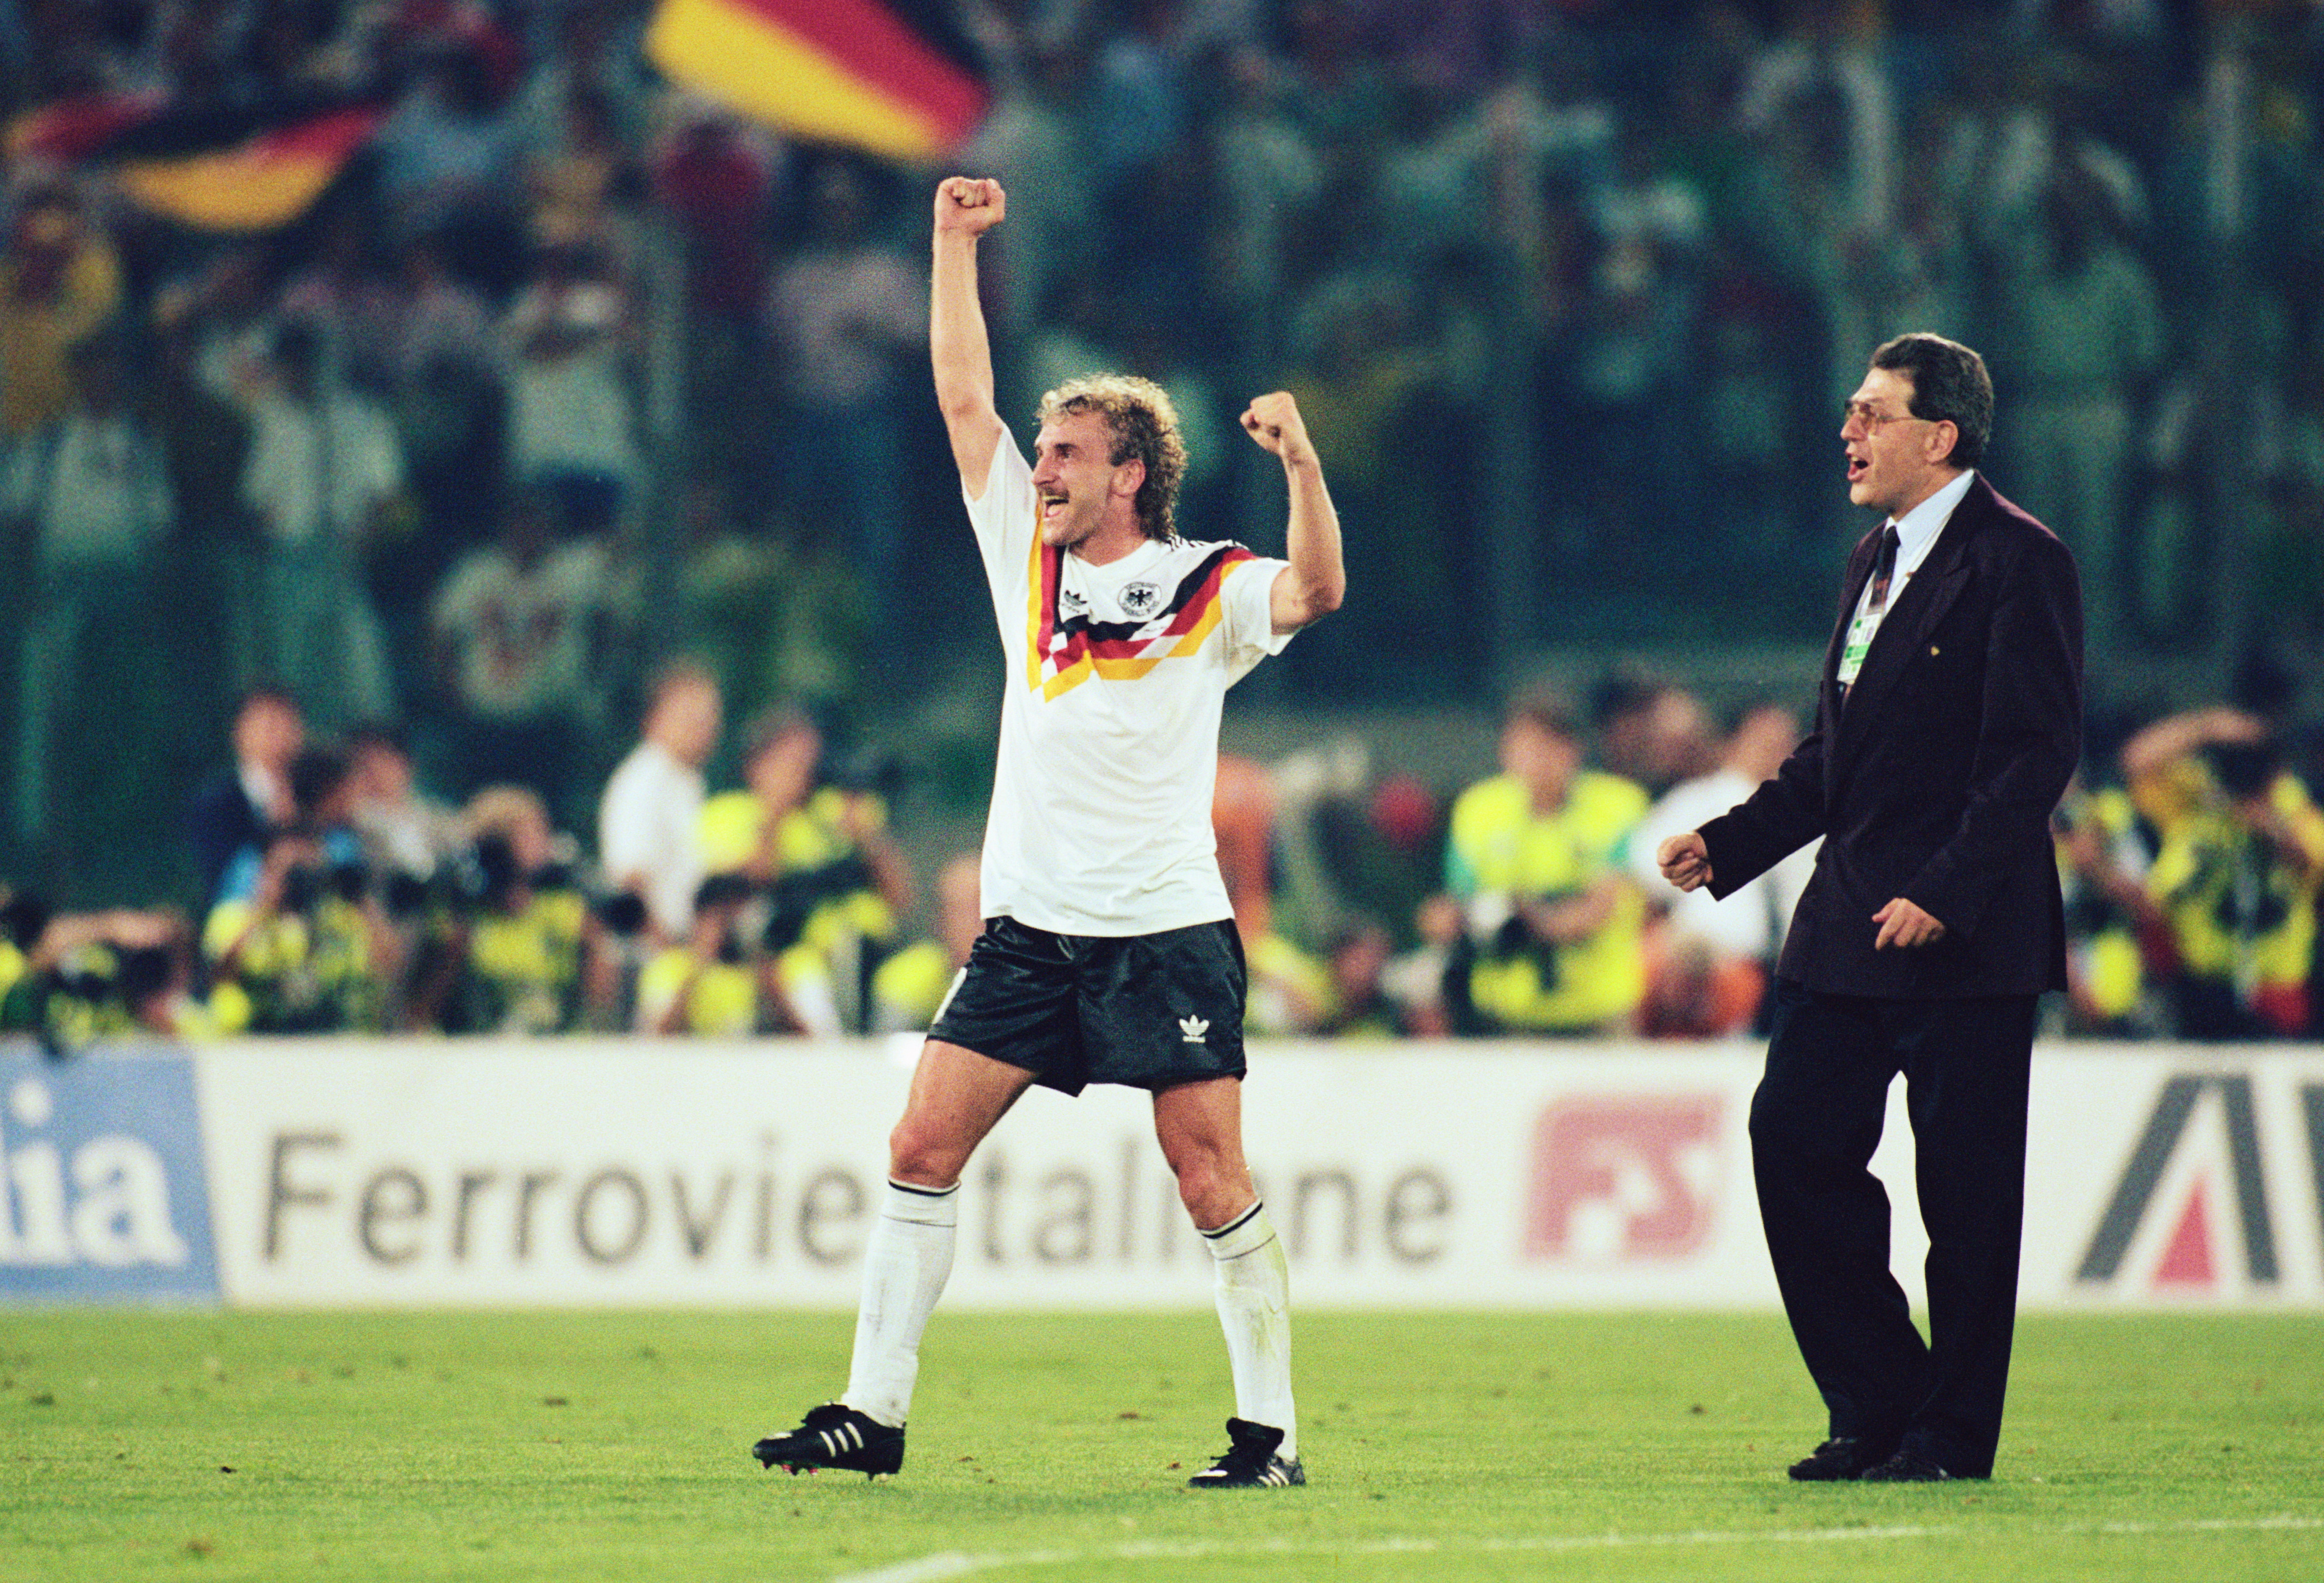 8 JUL 1990:  RUDI VOELLER OF GERMANY WAVES HIS FIST IN CELEBRATION AS GERMAN FLAGS WAVE IN THE CROWD BEHIND HIM AFTER GERMANY WIN THE 1990 SOCCER WORLD CUP FINAL1-0  AGAINST ARGENTINA. Mandatory Credit: Simon Bruty/ALLSPORT